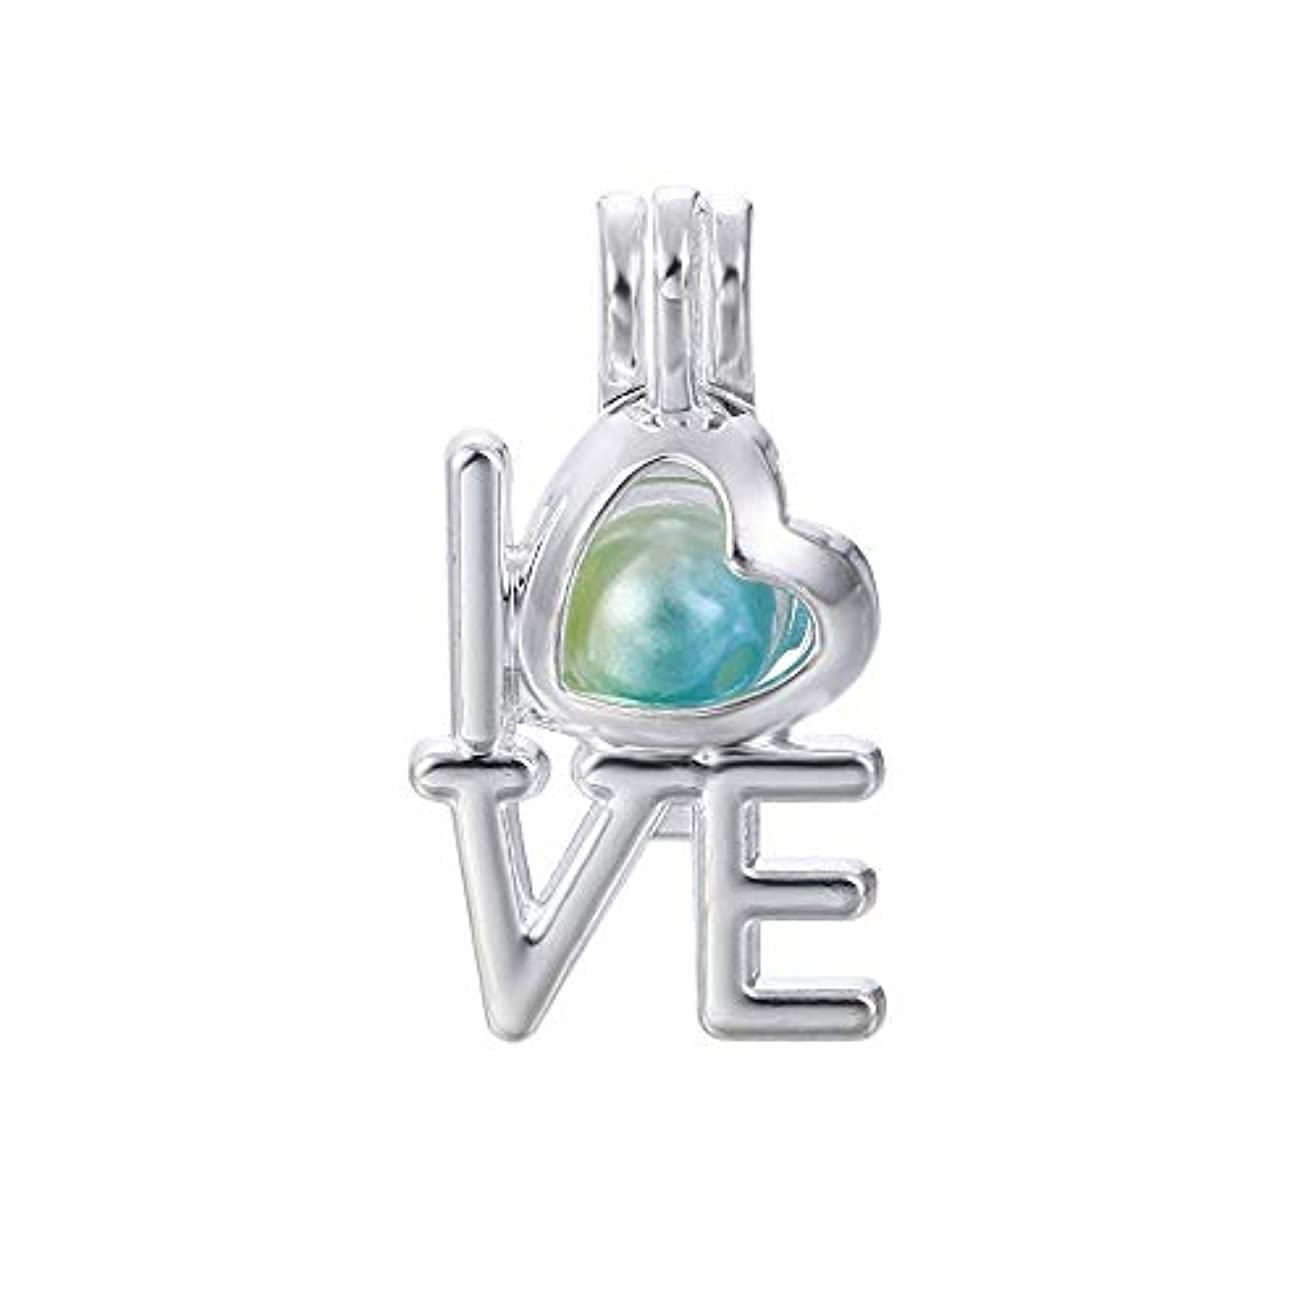 10pcs Silver Love Heart Pearl Beads Cage Locket Pendants Jewelry Making-for Oyster Pearls, Essential Oil Diffuser, Fun Gifts (Love Heart)